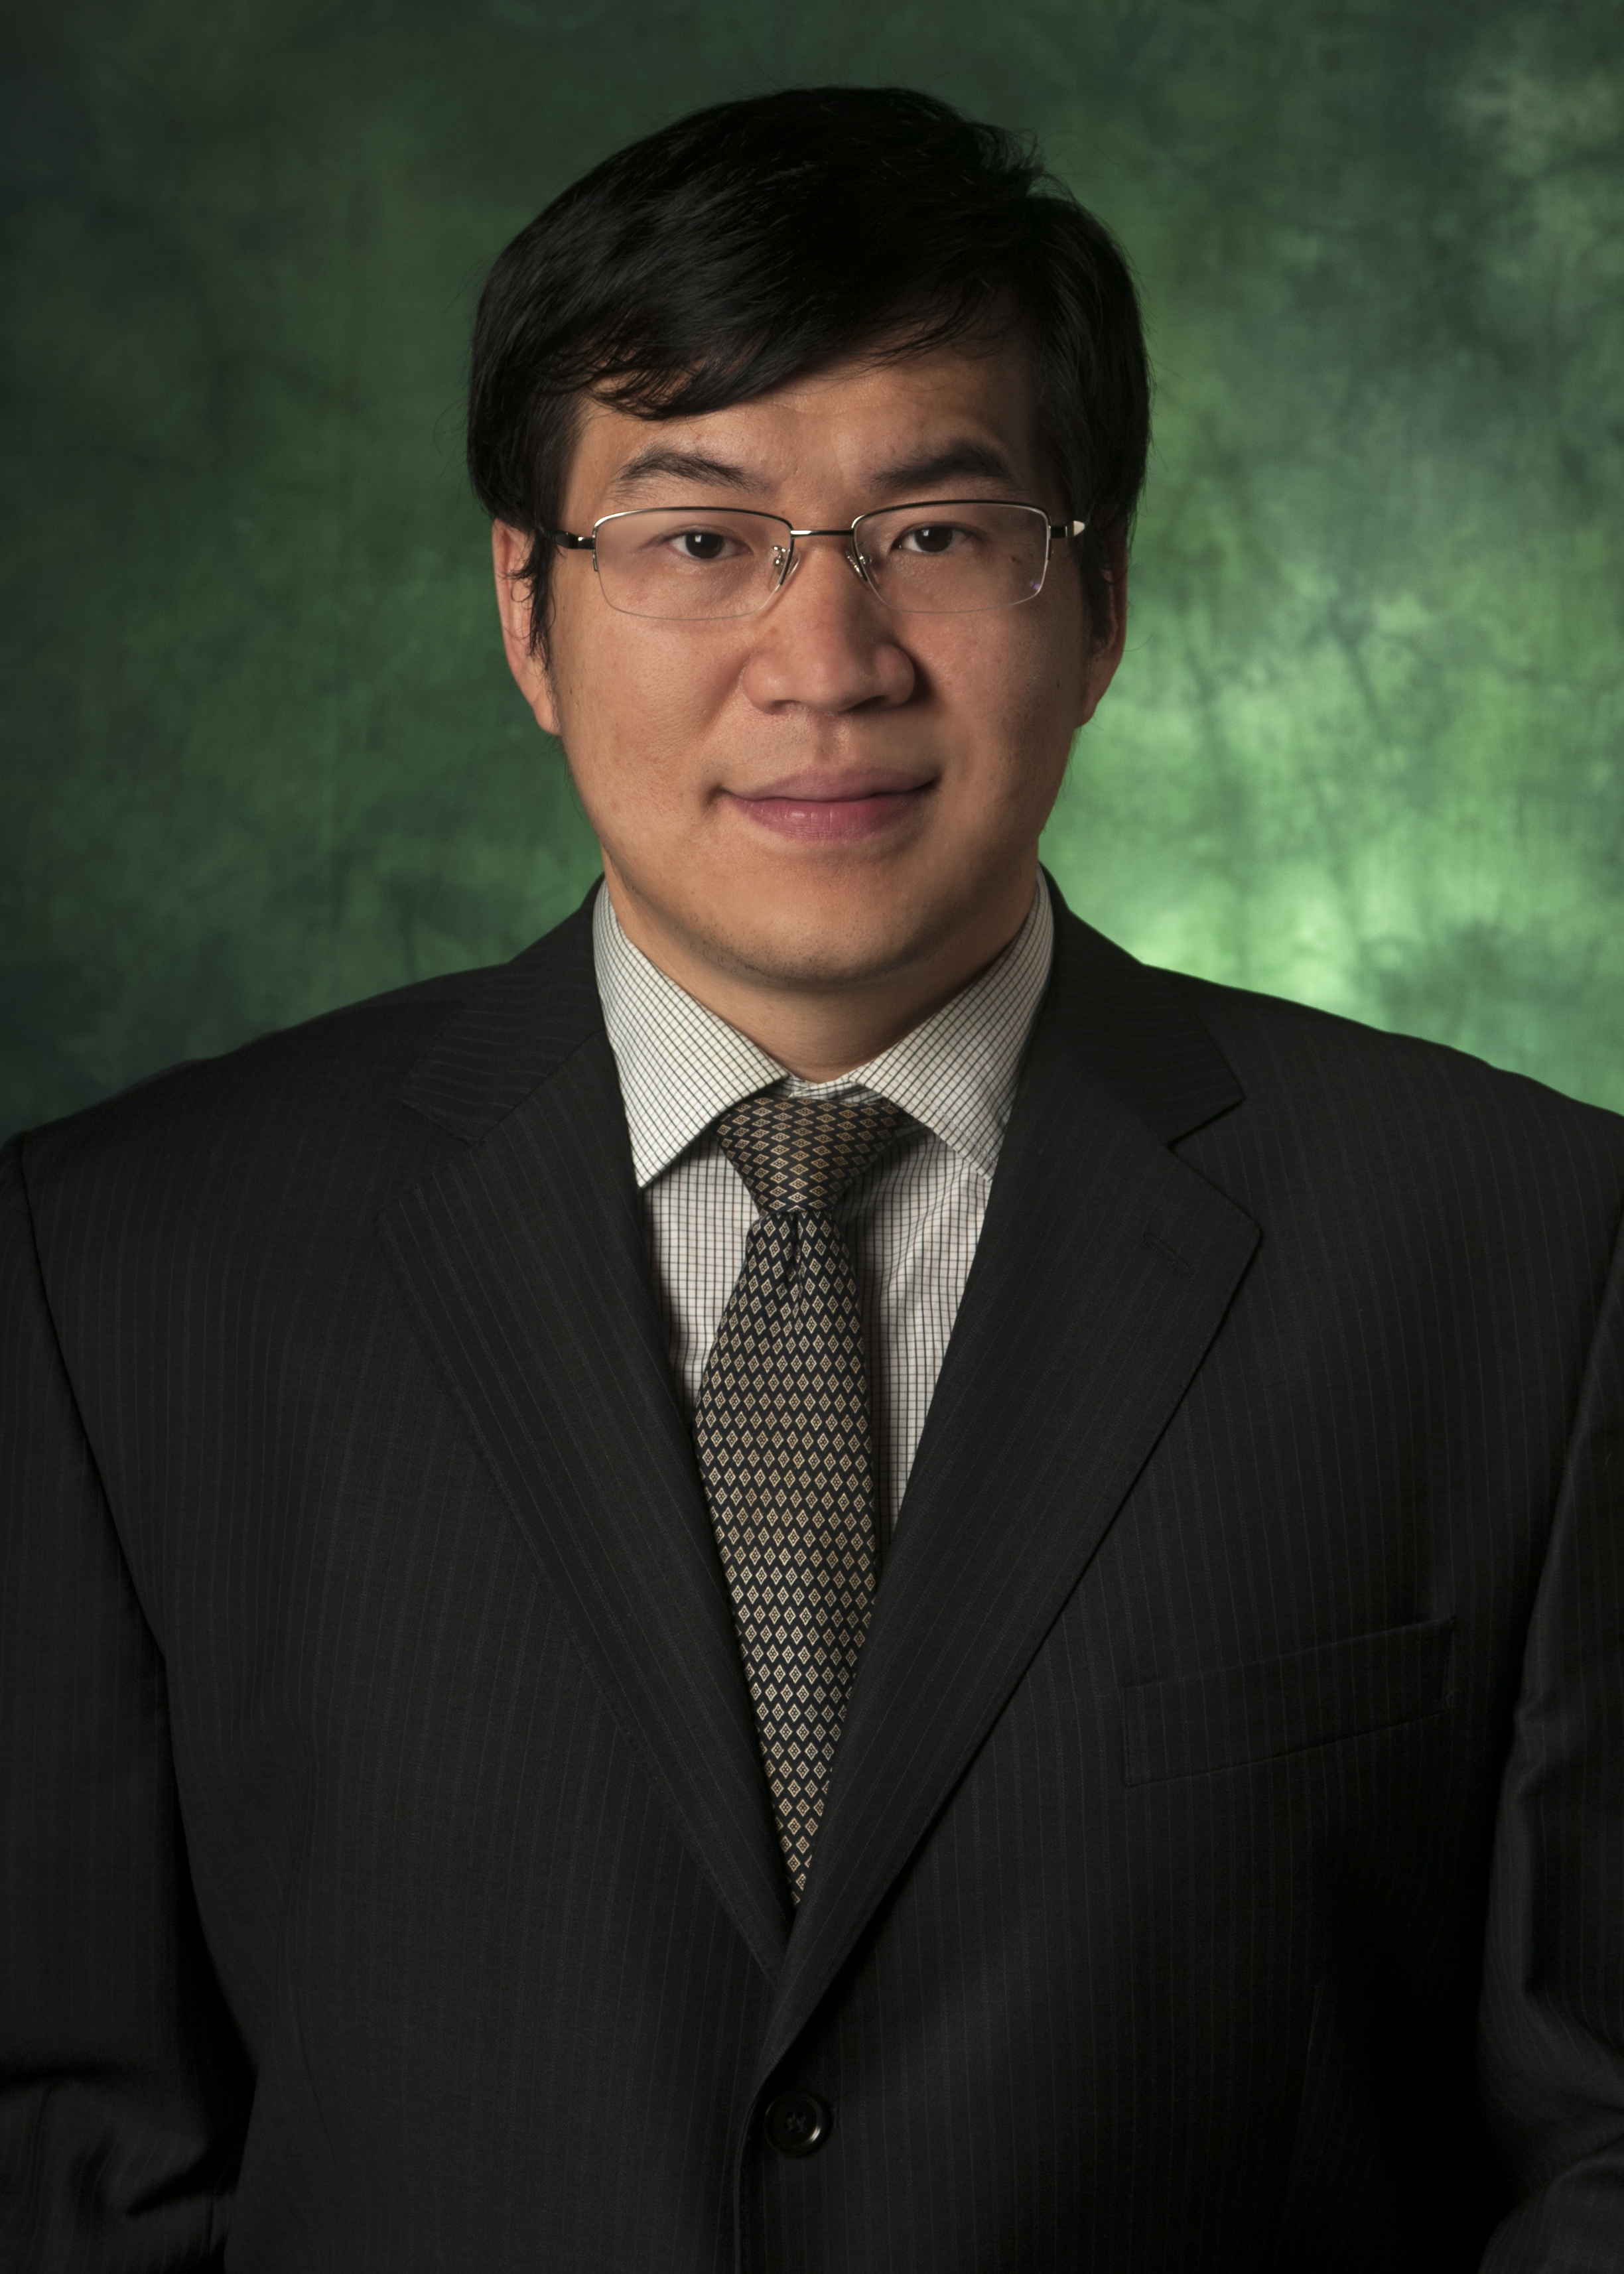 Tao Yang is an assistant professor in UNT's College of Engineering Department of Electrical Engineering.